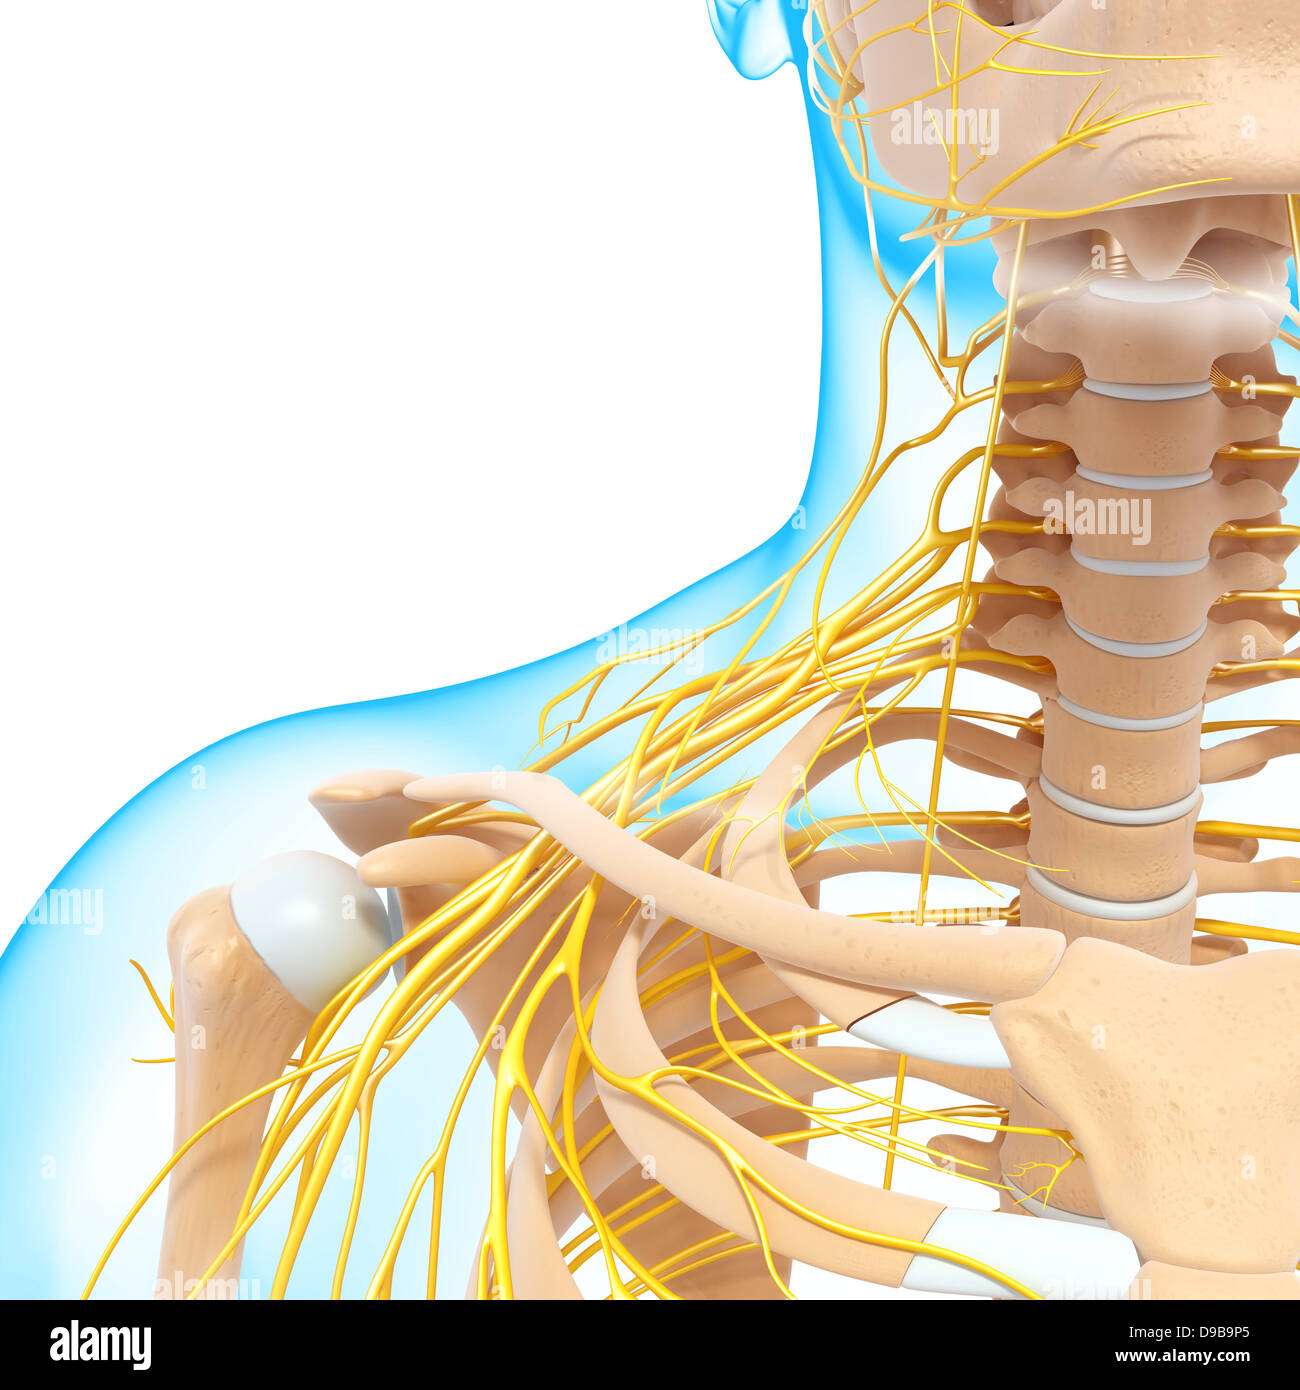 Nervous System Stockfotos & Nervous System Bilder - Alamy